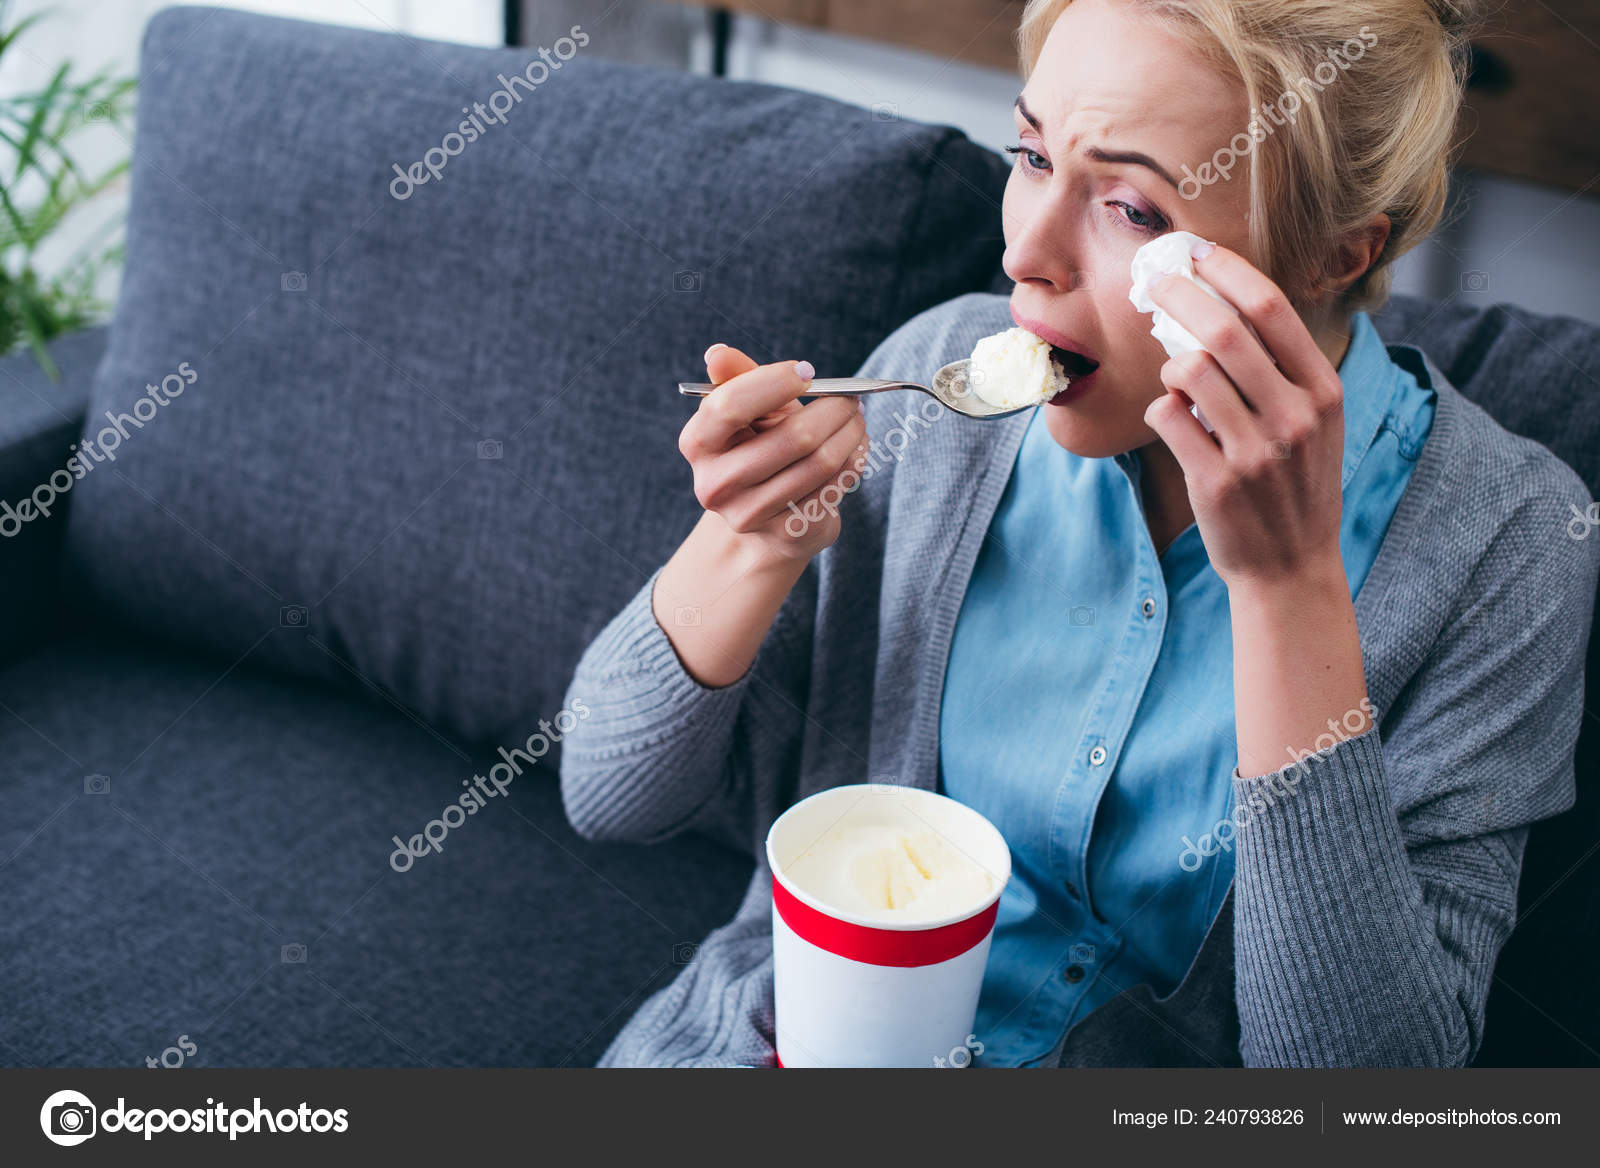 Woman Eating Ice Cream Crying While Siitng Couch Home Alone Stock